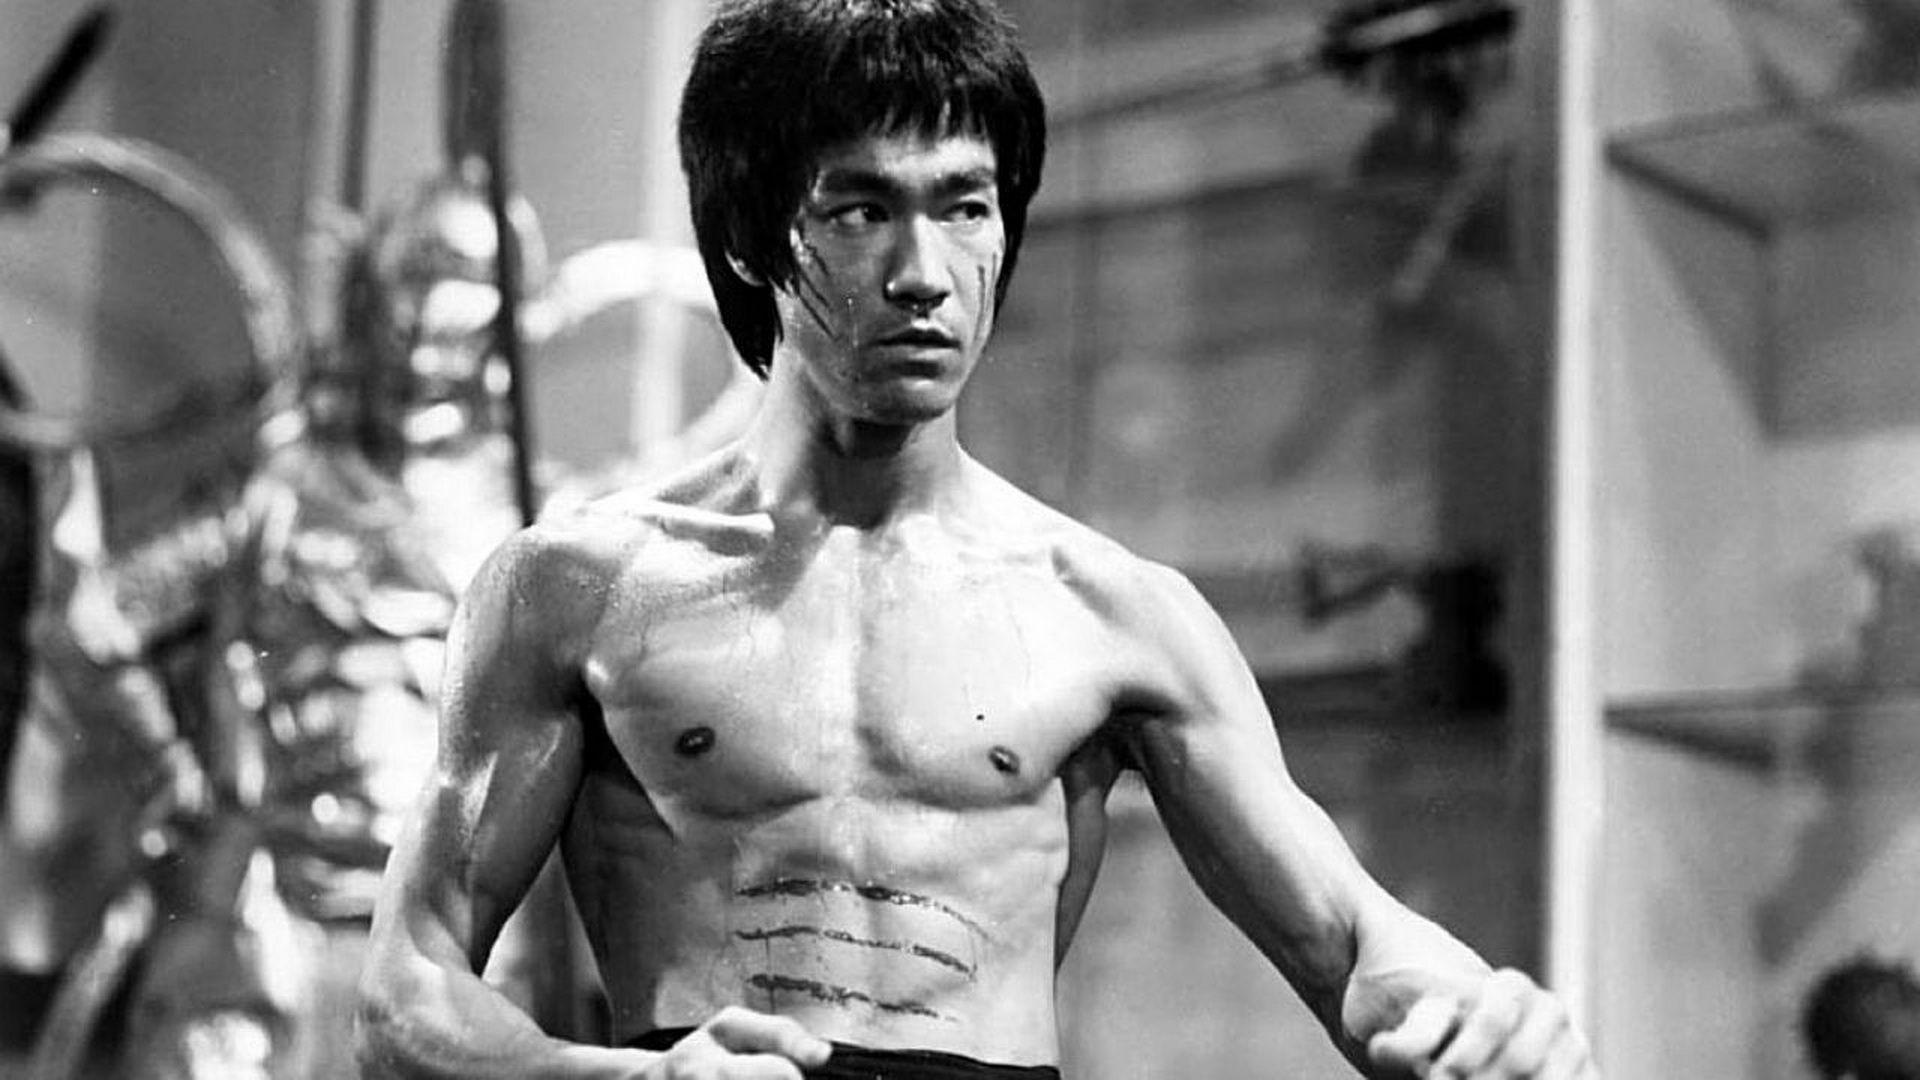 Bruce Lee Black and White Photograph